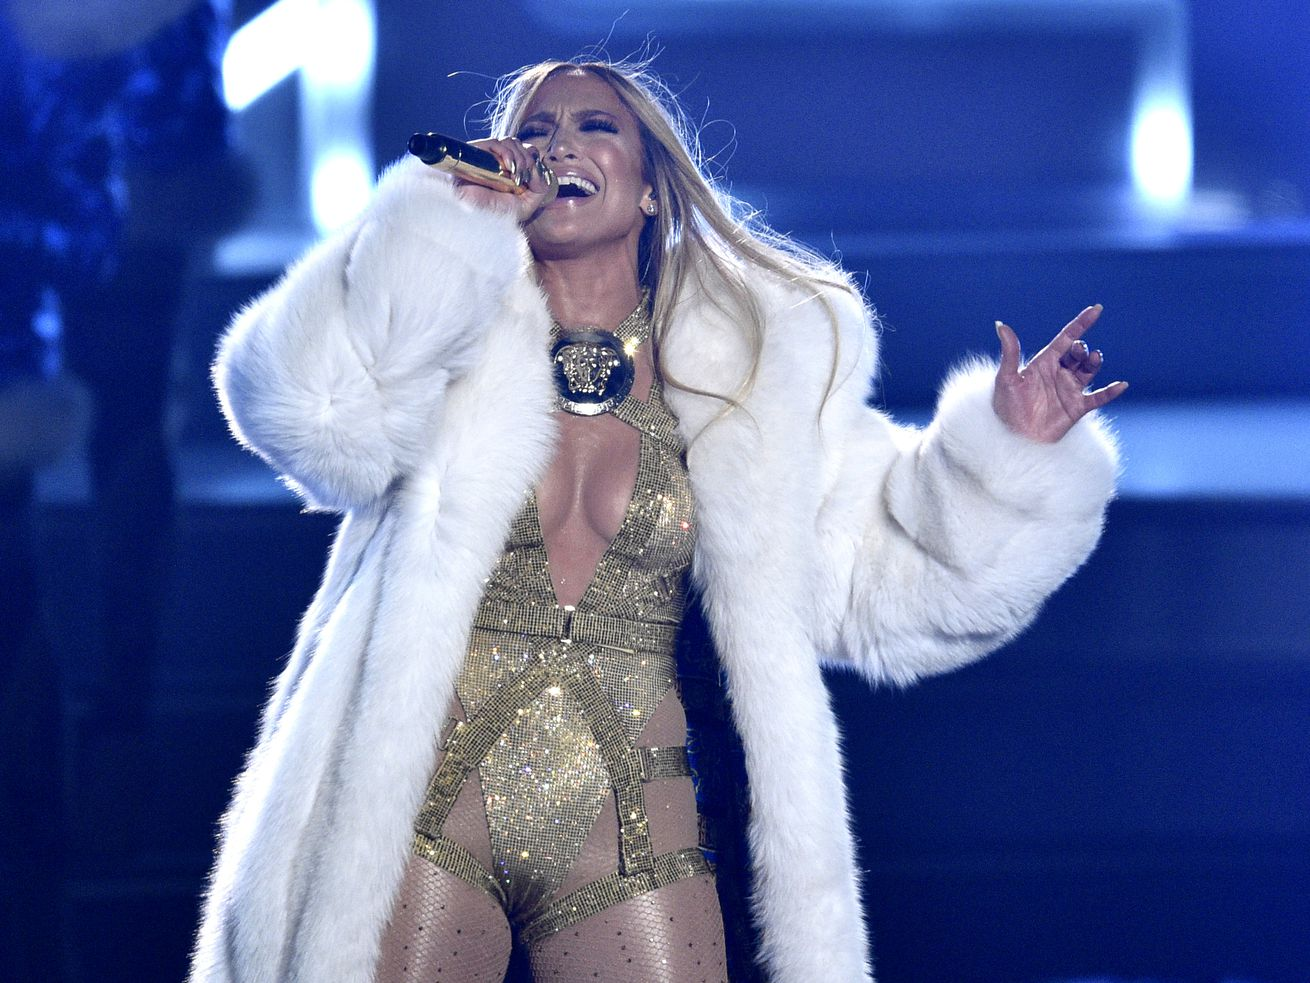 """Jennifer Lopez will help bring in the New Year with a headlining performance in New York's Time Square for """"Dick Clark's New Year's Rockin' Eve with Ryan Seacrest 2021."""""""